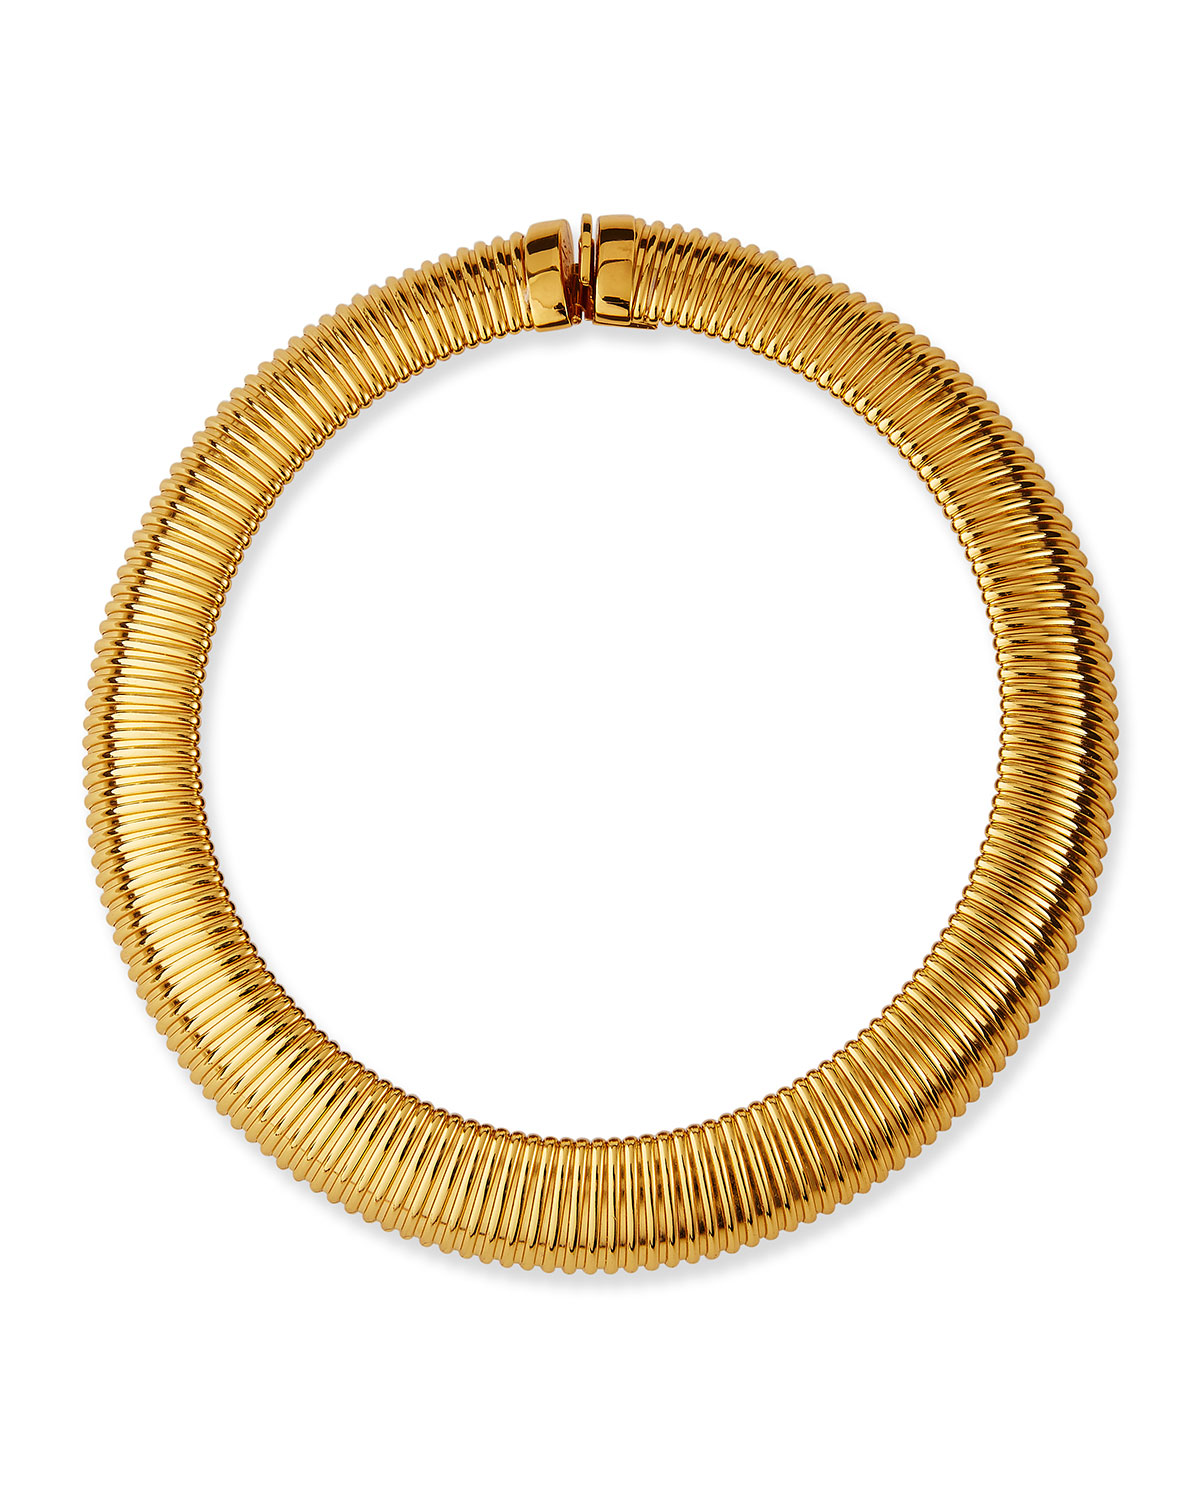 Aida Grooved Necklace